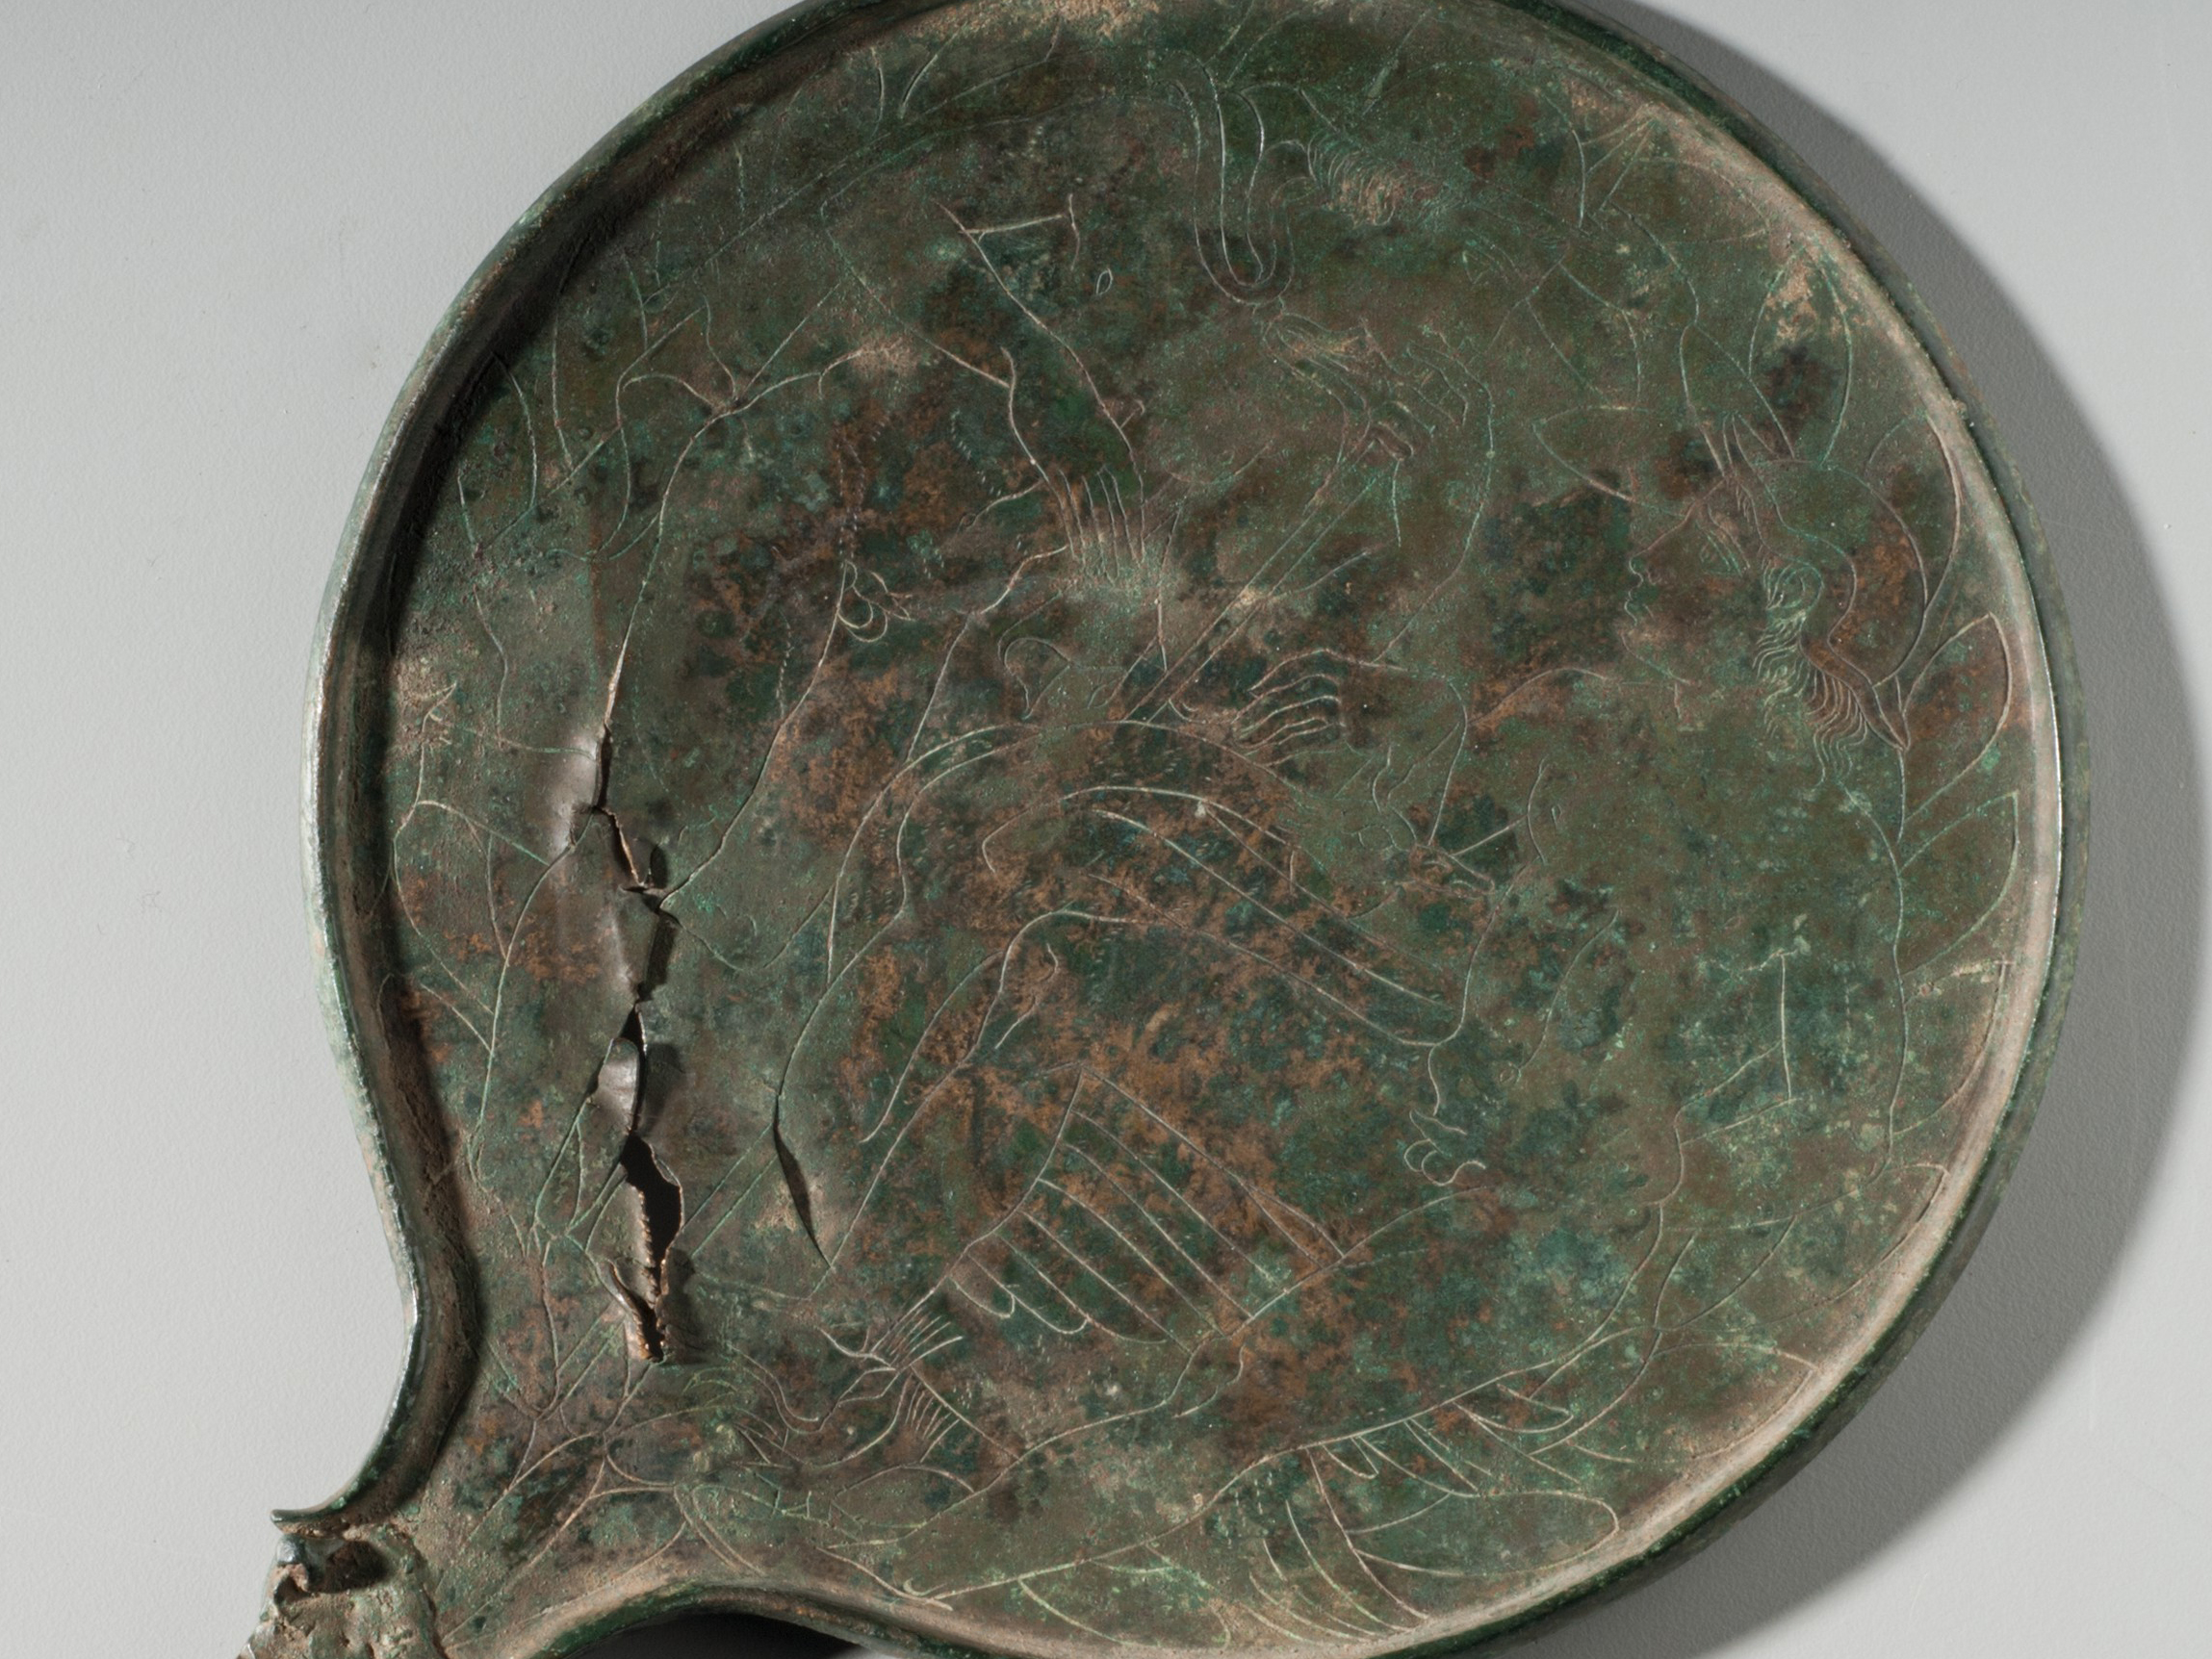 This image shows the reverse of a bronze handheld mirror with a lightly incised decoration. The main body is round with a raised edge, and there is a long, diagonal tear on the lower section. A tang extends from the body but there is no handle.